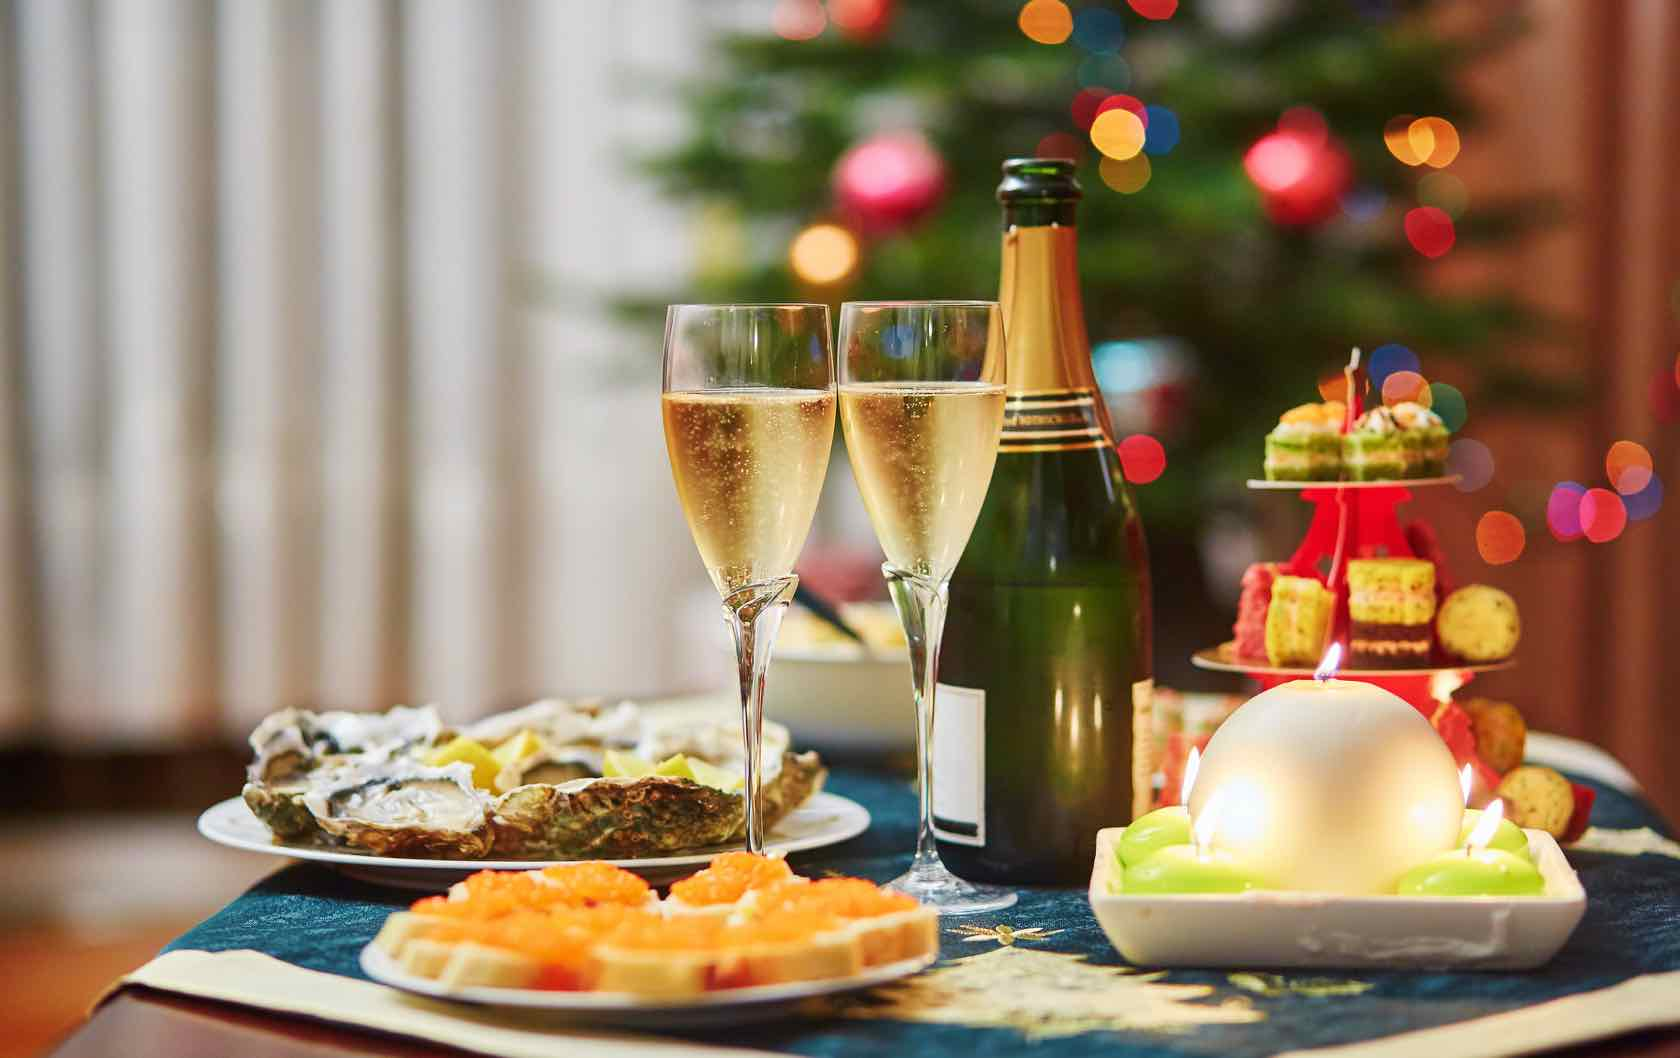 Traditional Christmas Food in France: How to Have a Festive French Holiday Feast!